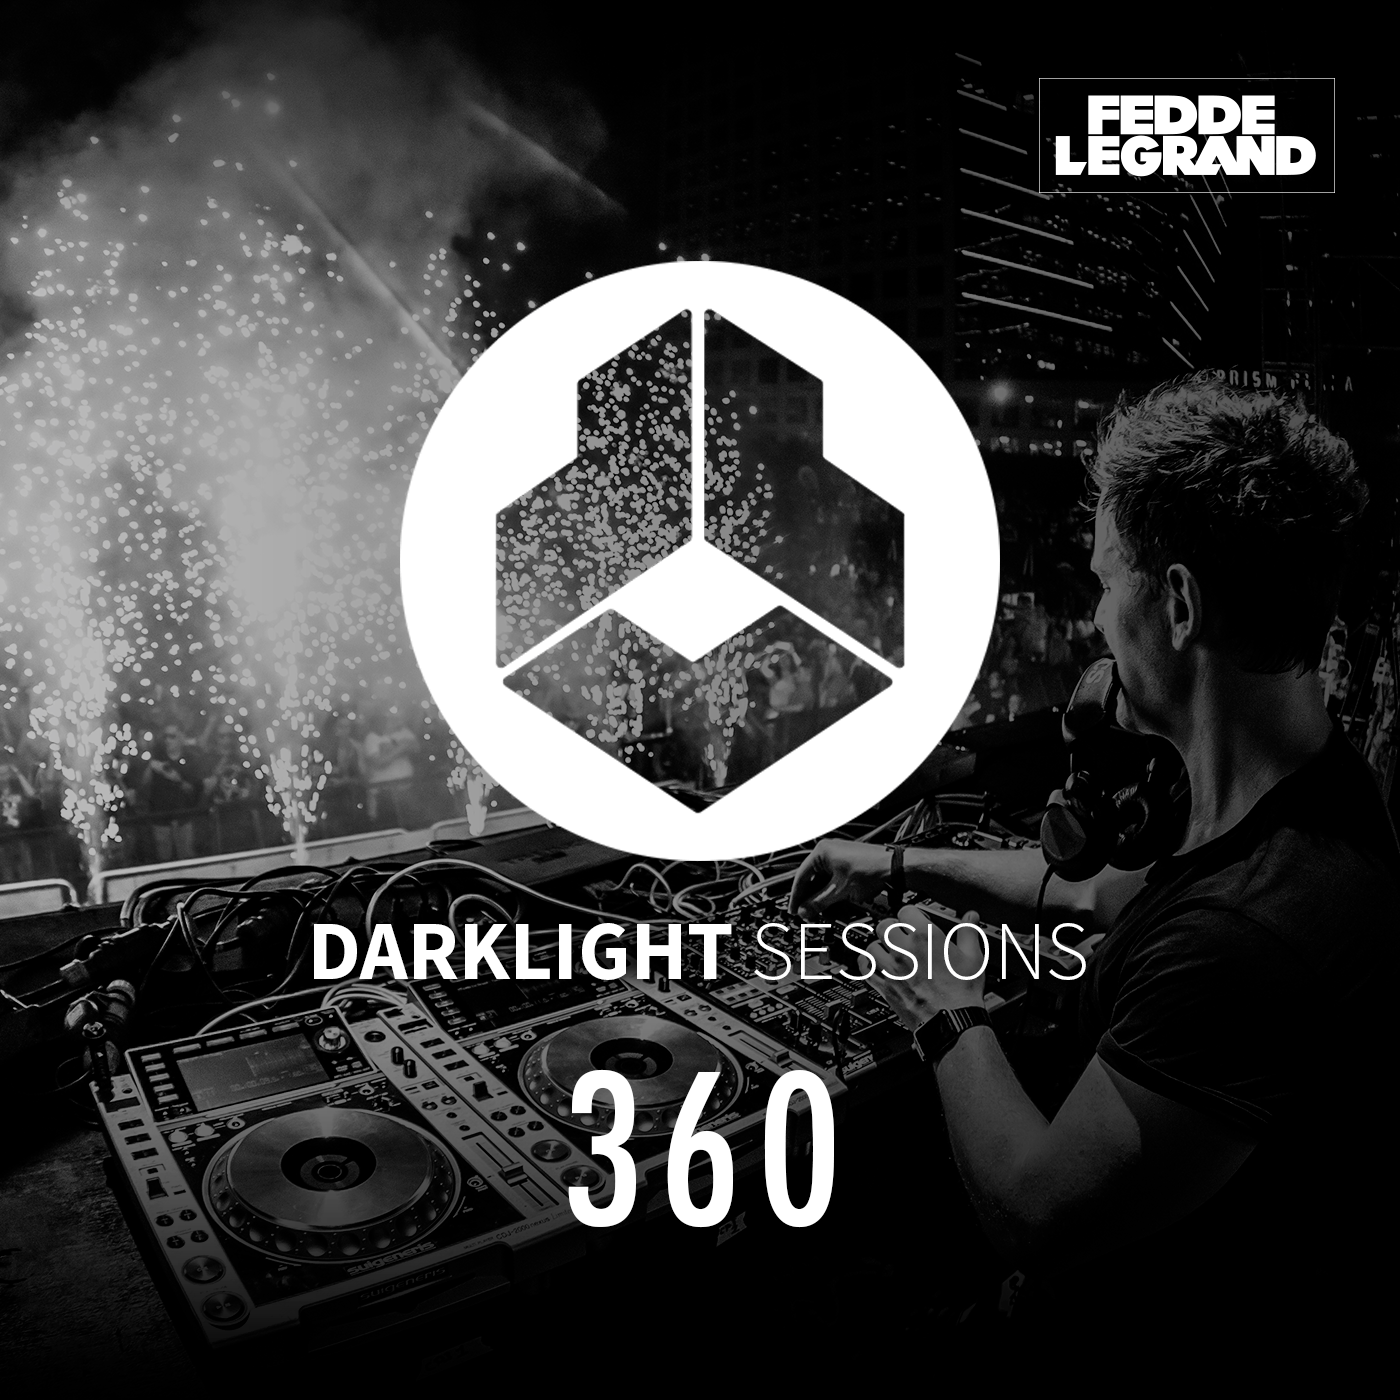 Darklight Sessions 360